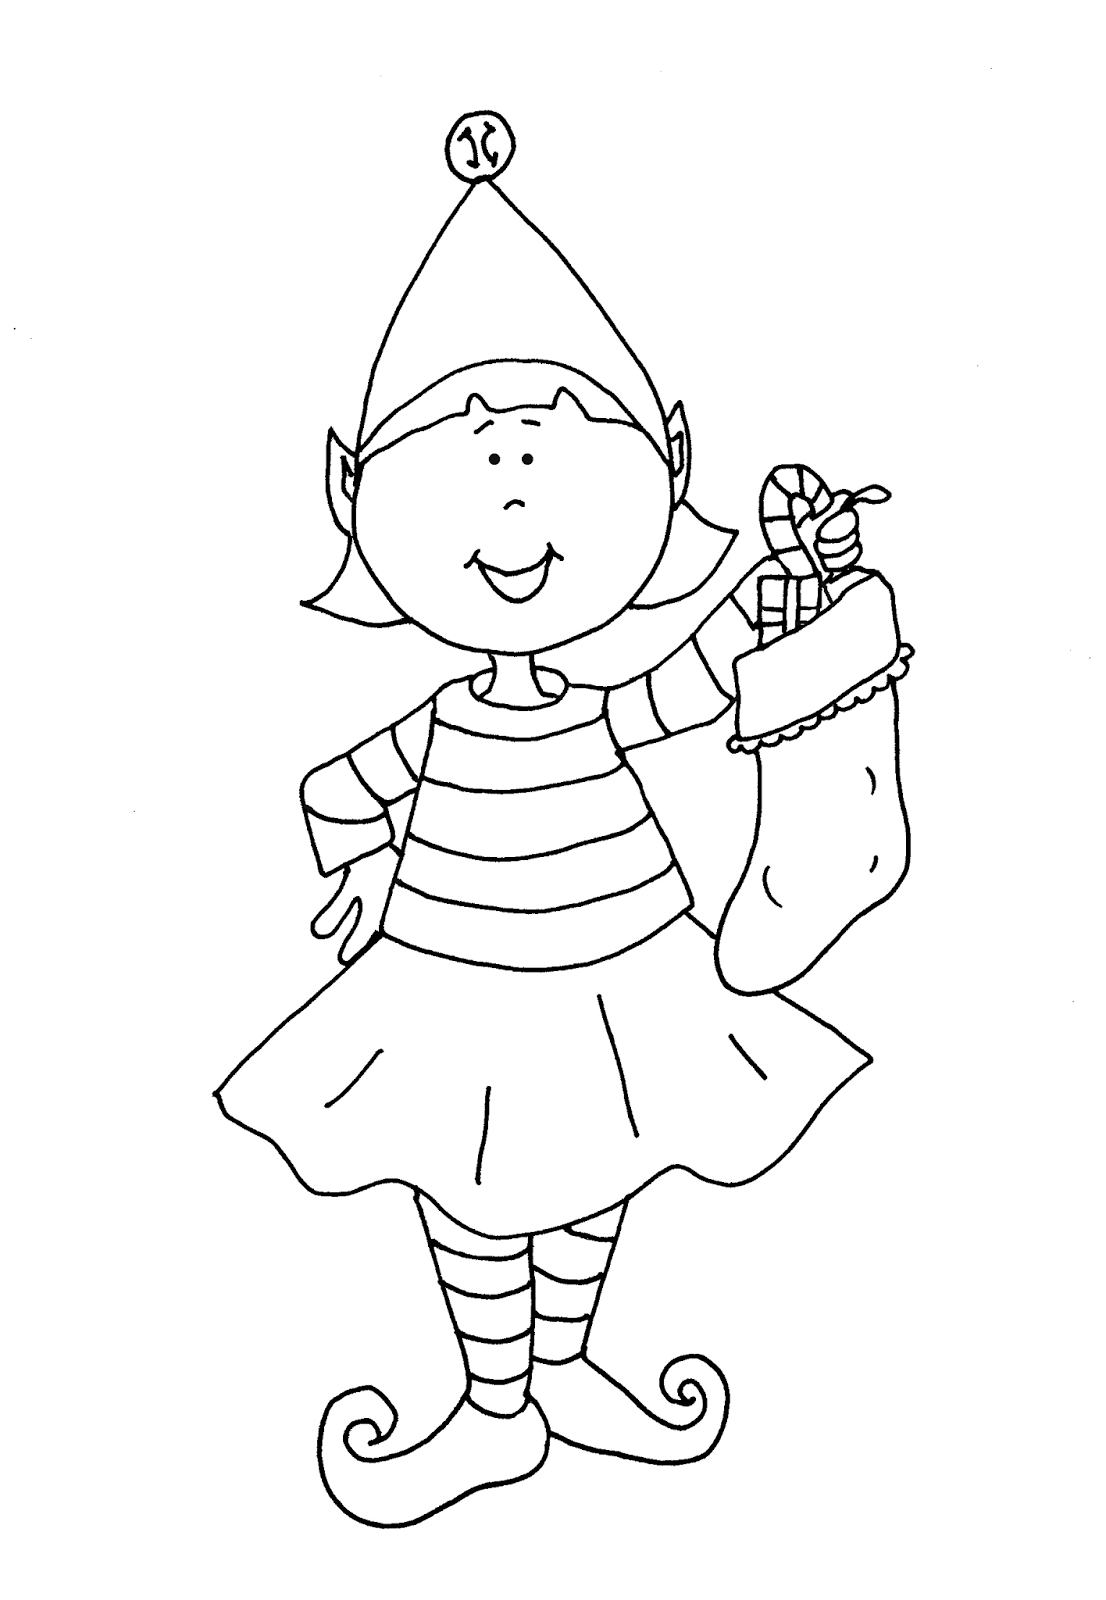 Free Christmas Coloring Pages To Print For Girls